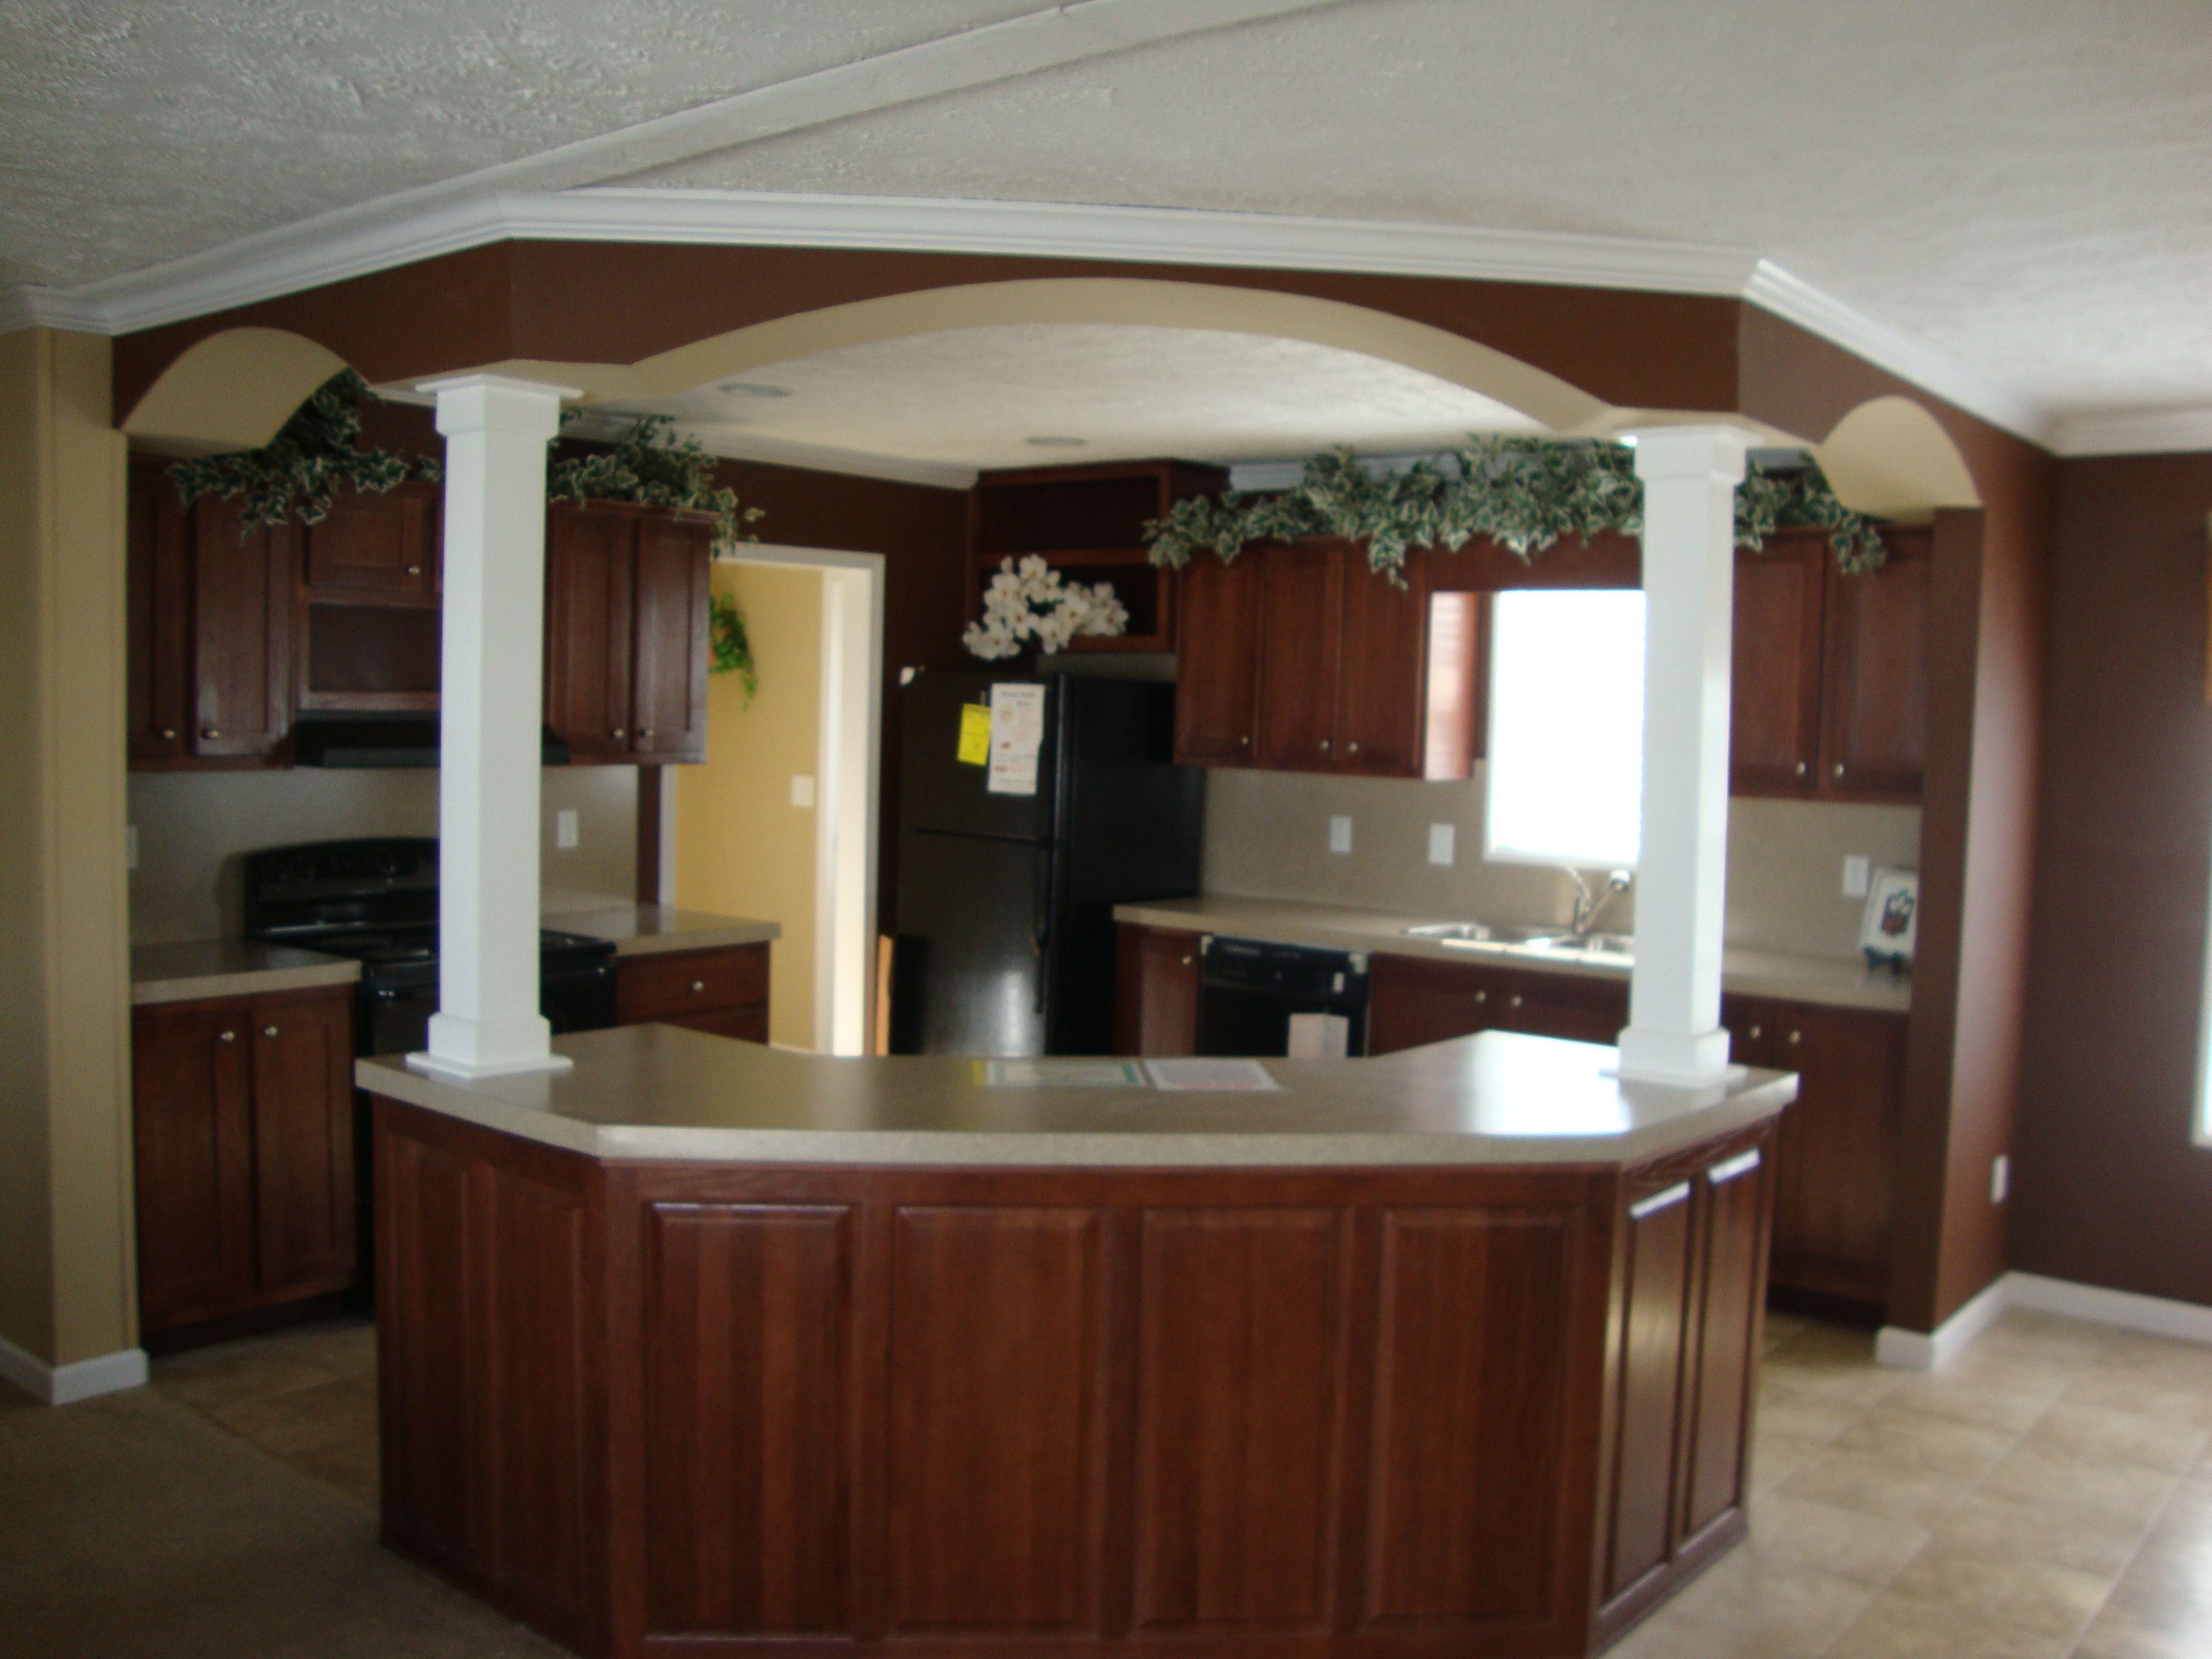 mobile homes kitchen designs. Woods Mobile Home Kitchens | Search Homes Kitchen Designs E